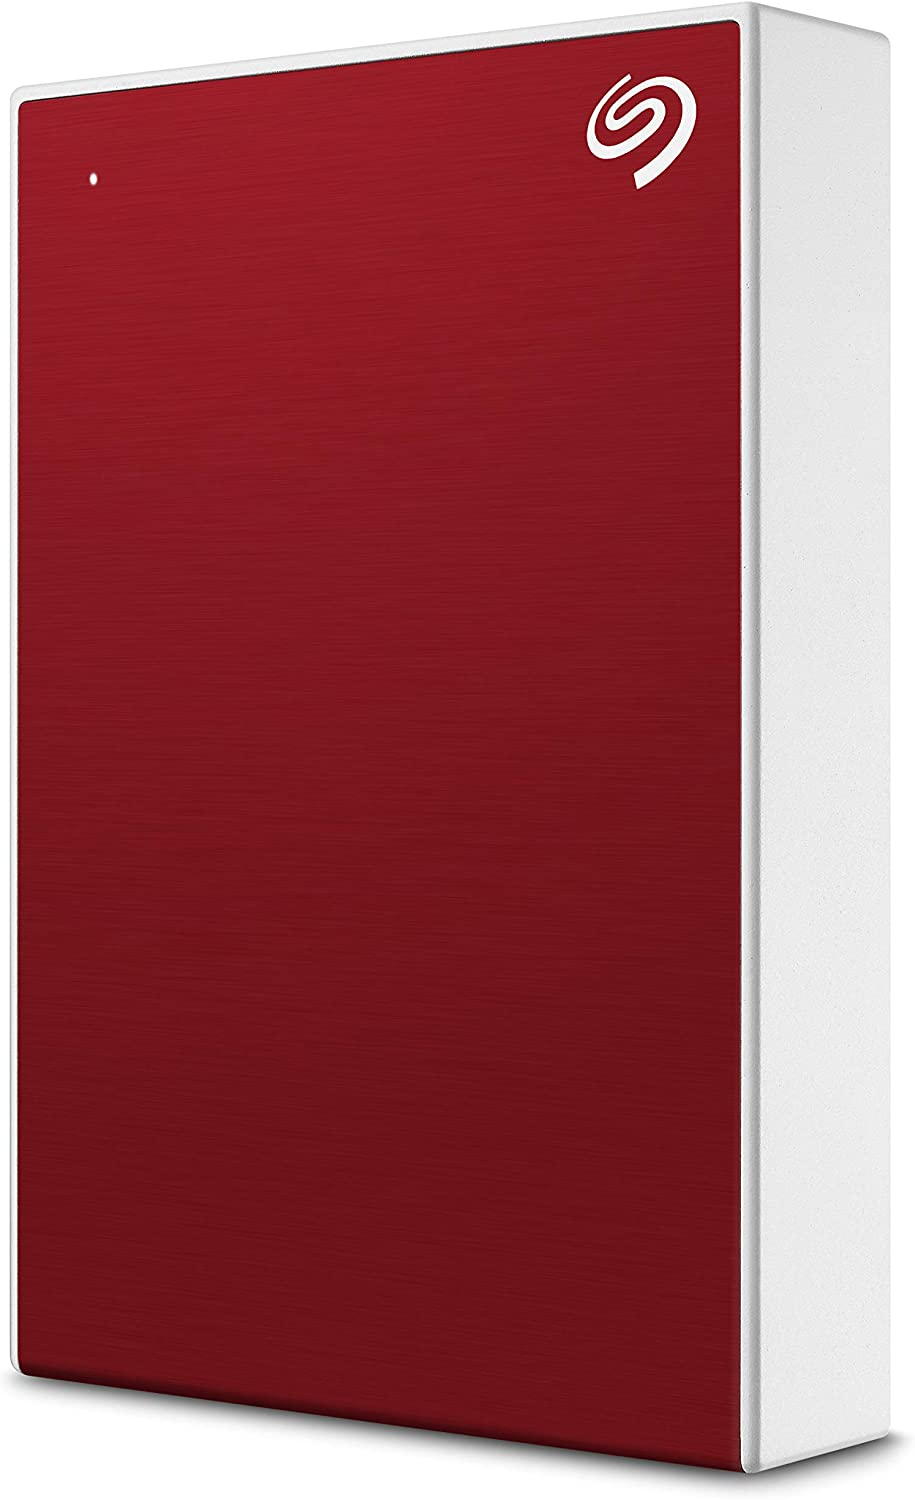 Seagate Backup Plus Portable 4TB External Hard Drive HDD – Red USB 3.0 for PC Laptop and Mac, 1 year MylioCreate, 2 Months Adobe CC Photography (STHP4000403)